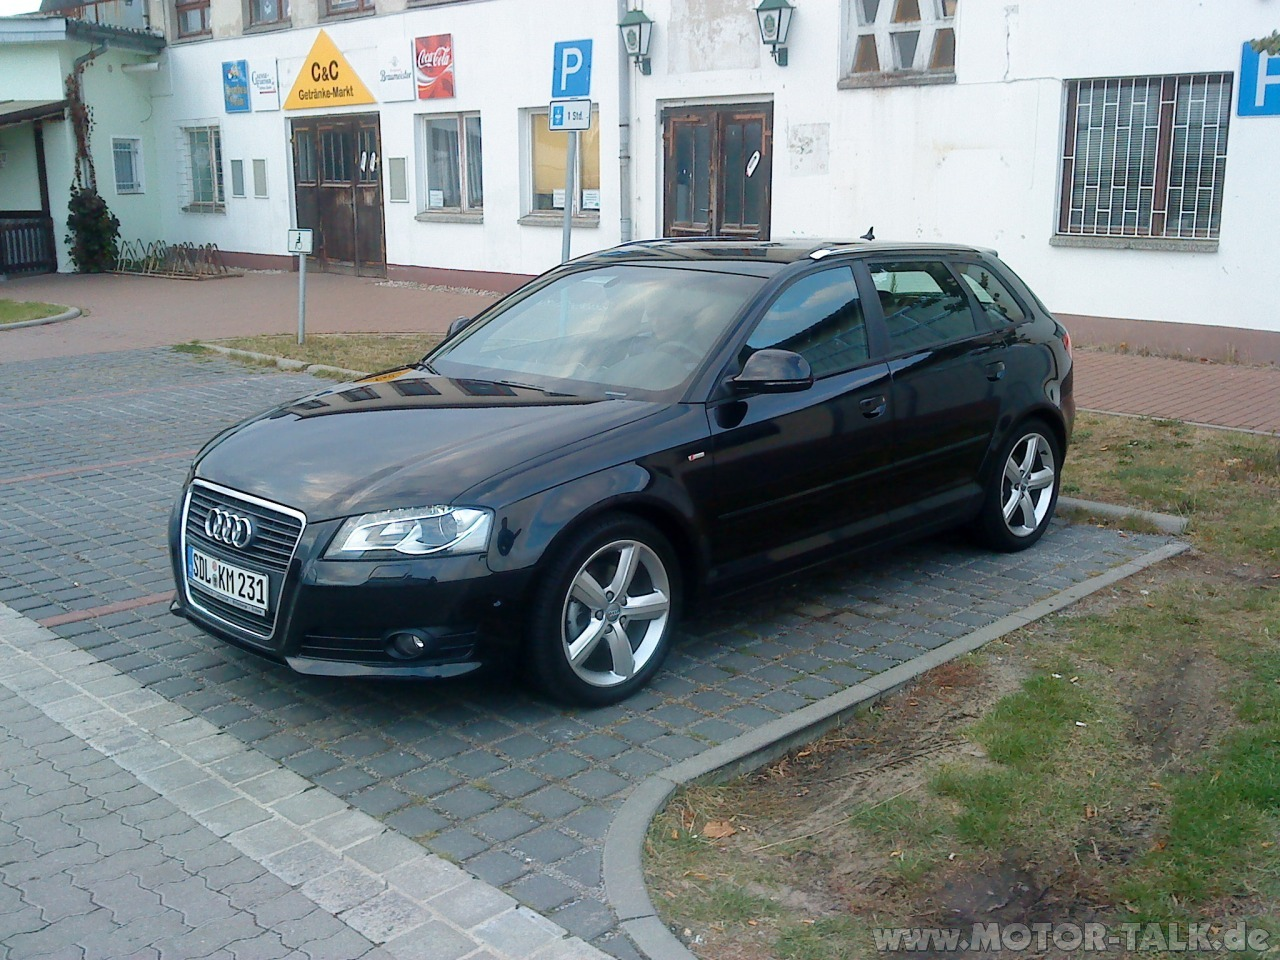 2008 audi a3 sportback 1 8 tfsi quattro related infomation. Black Bedroom Furniture Sets. Home Design Ideas